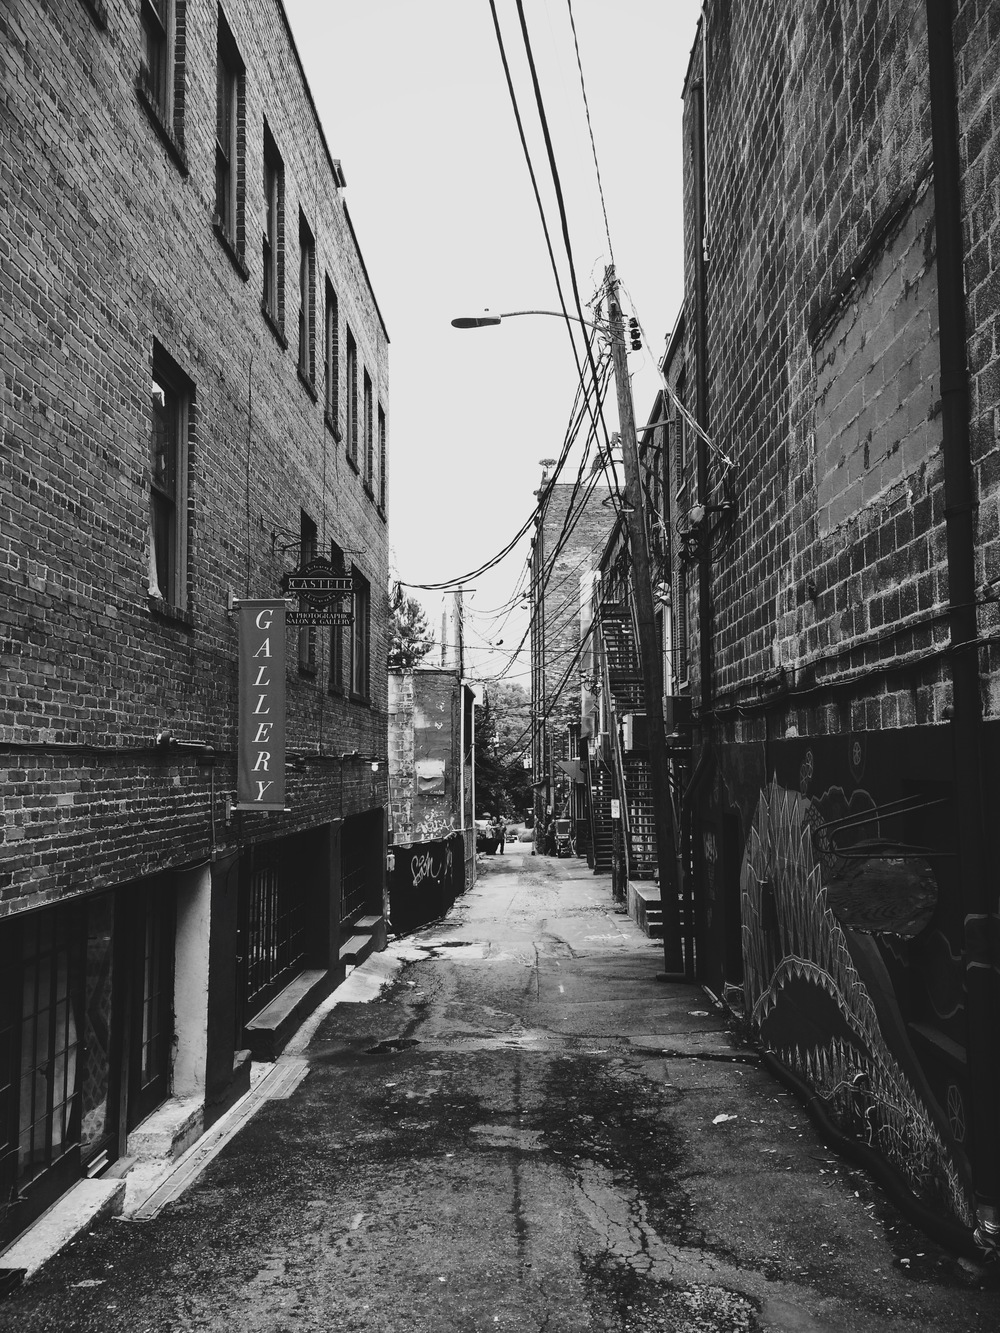 Exploring the alleys of Asheville.